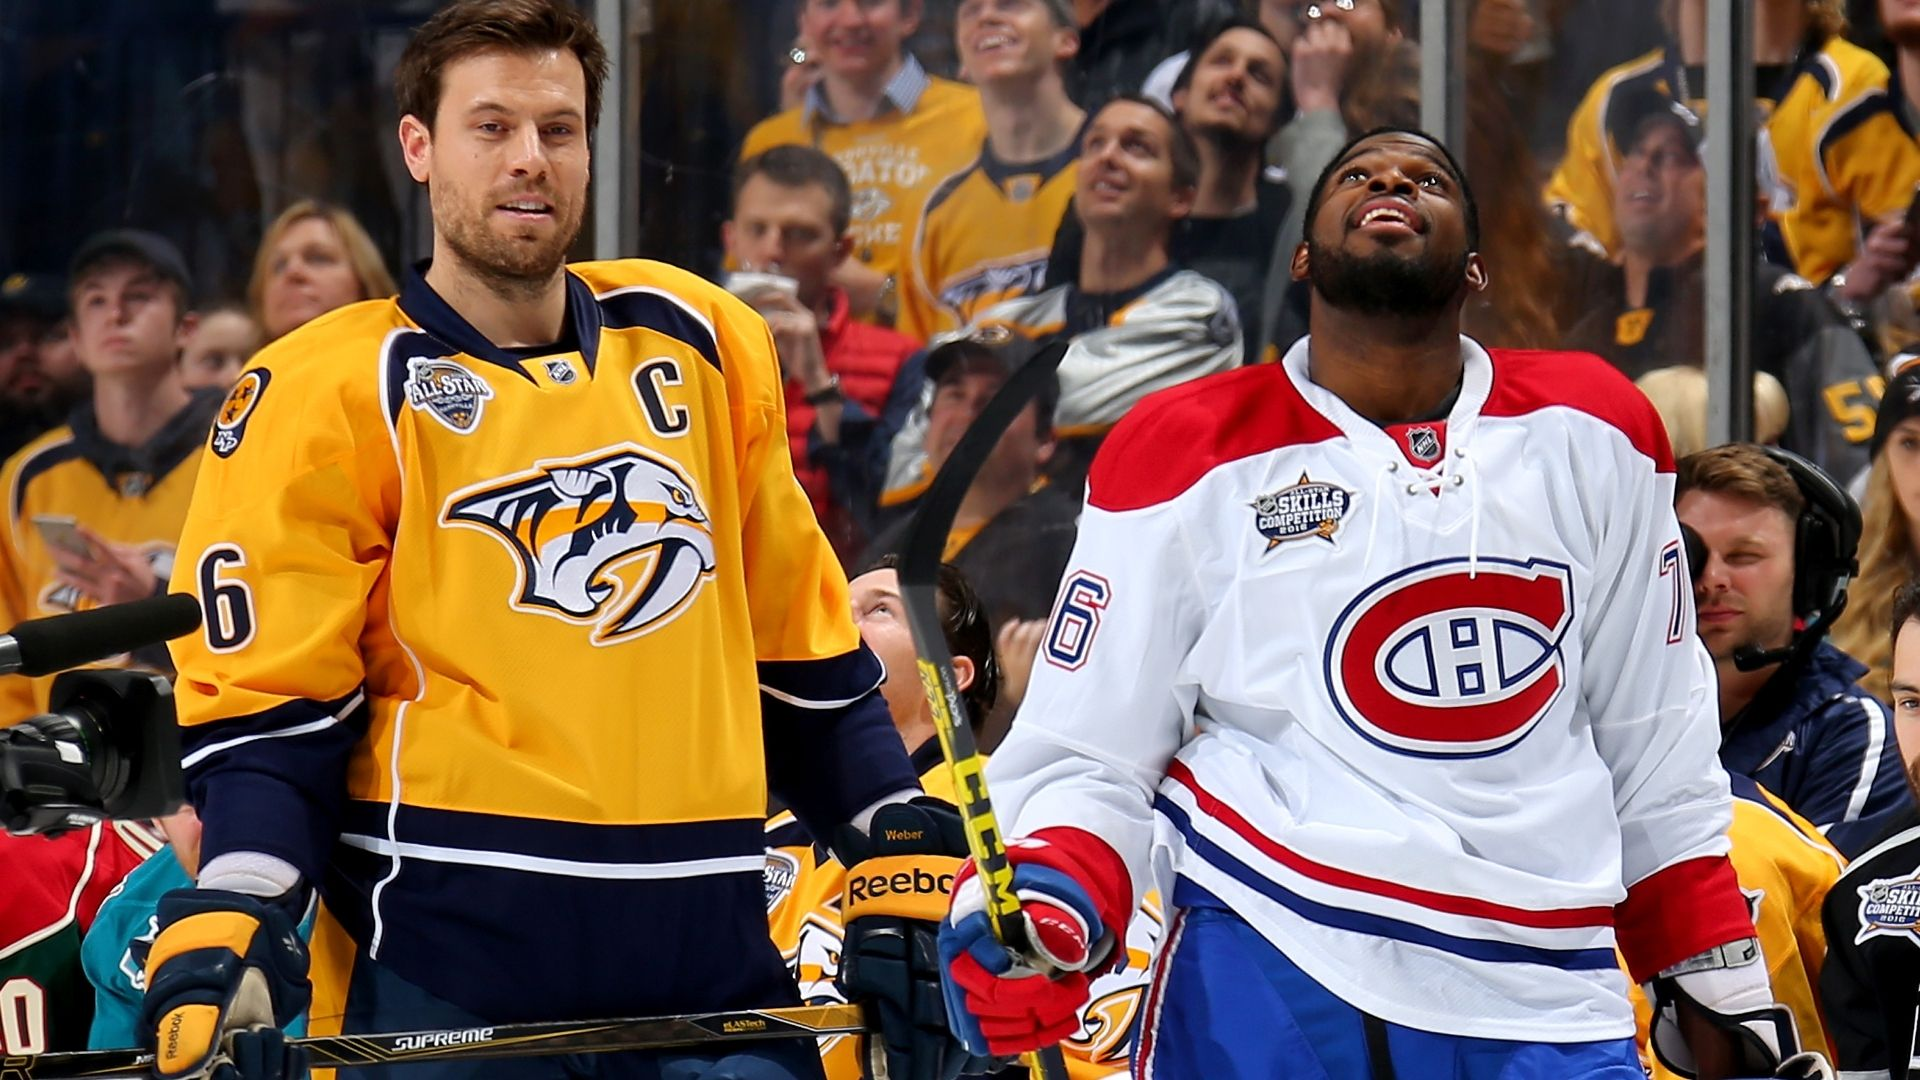 Subban traded to Predators, Weber goes to Habs